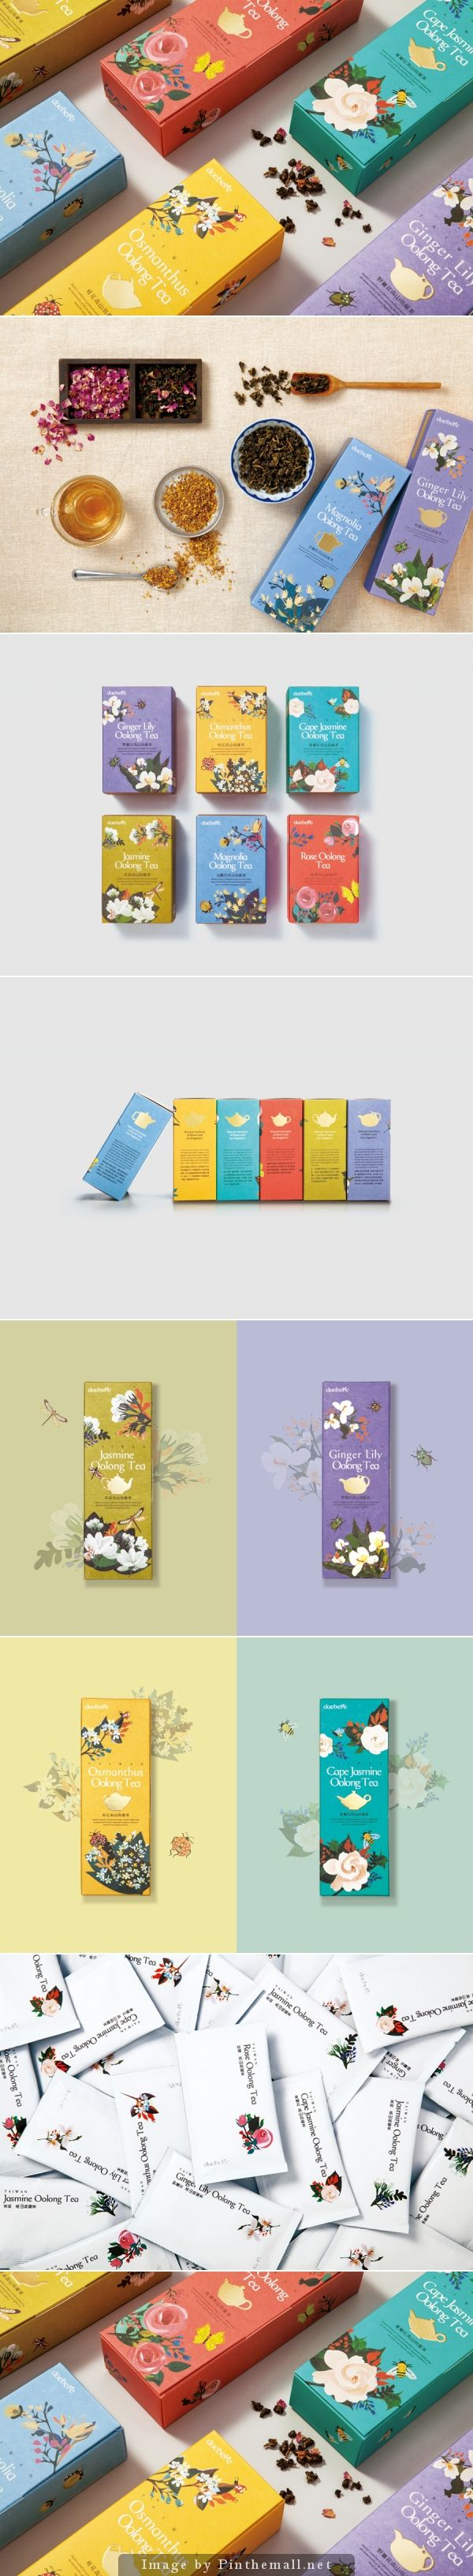 Gorgeous Daebeté Scented Tea #packaging created by Victor Design curated by Packaging Diva PD top #2014 pin